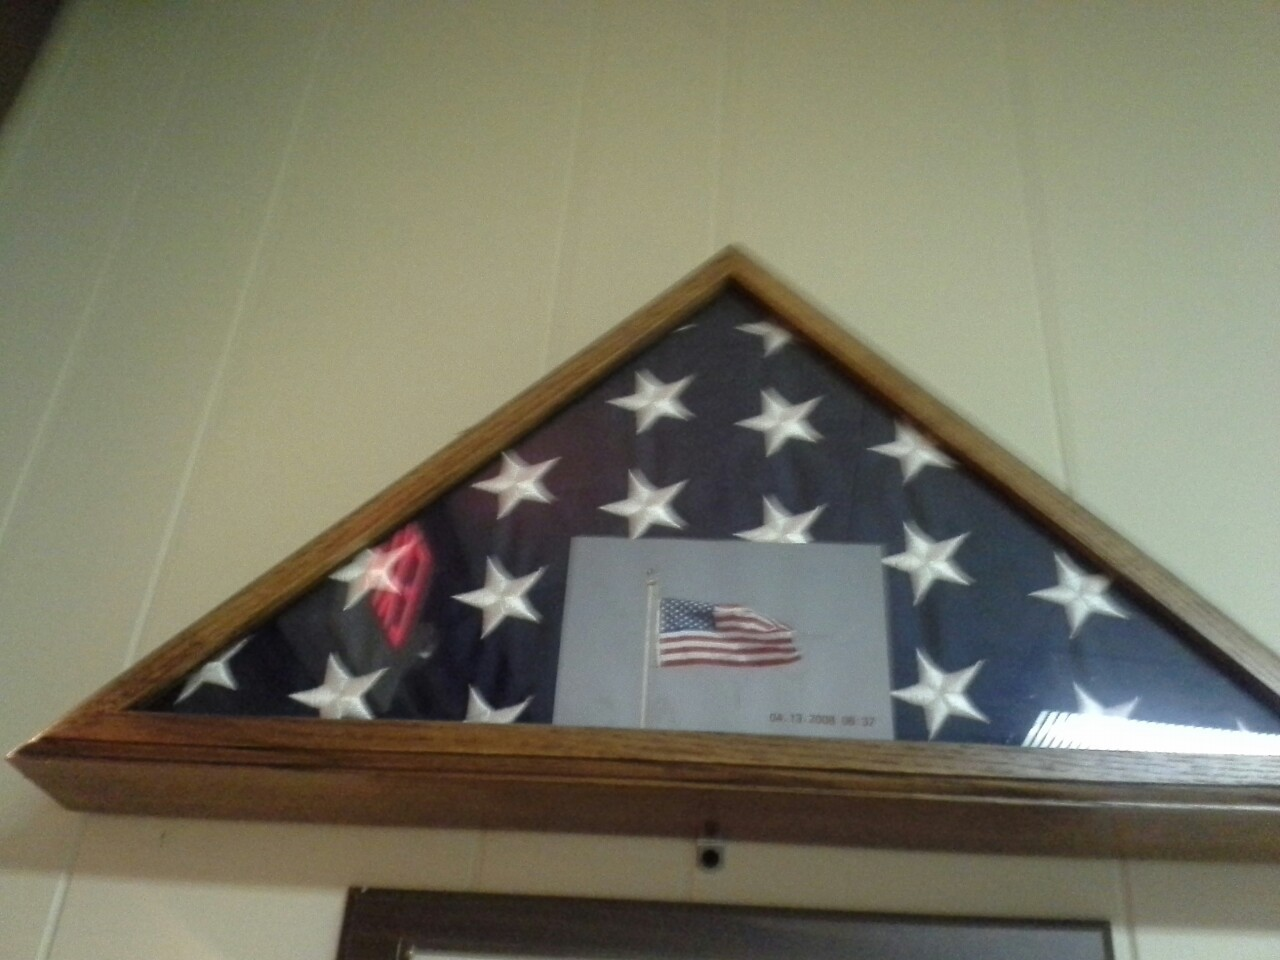 Flag in a tryangle box